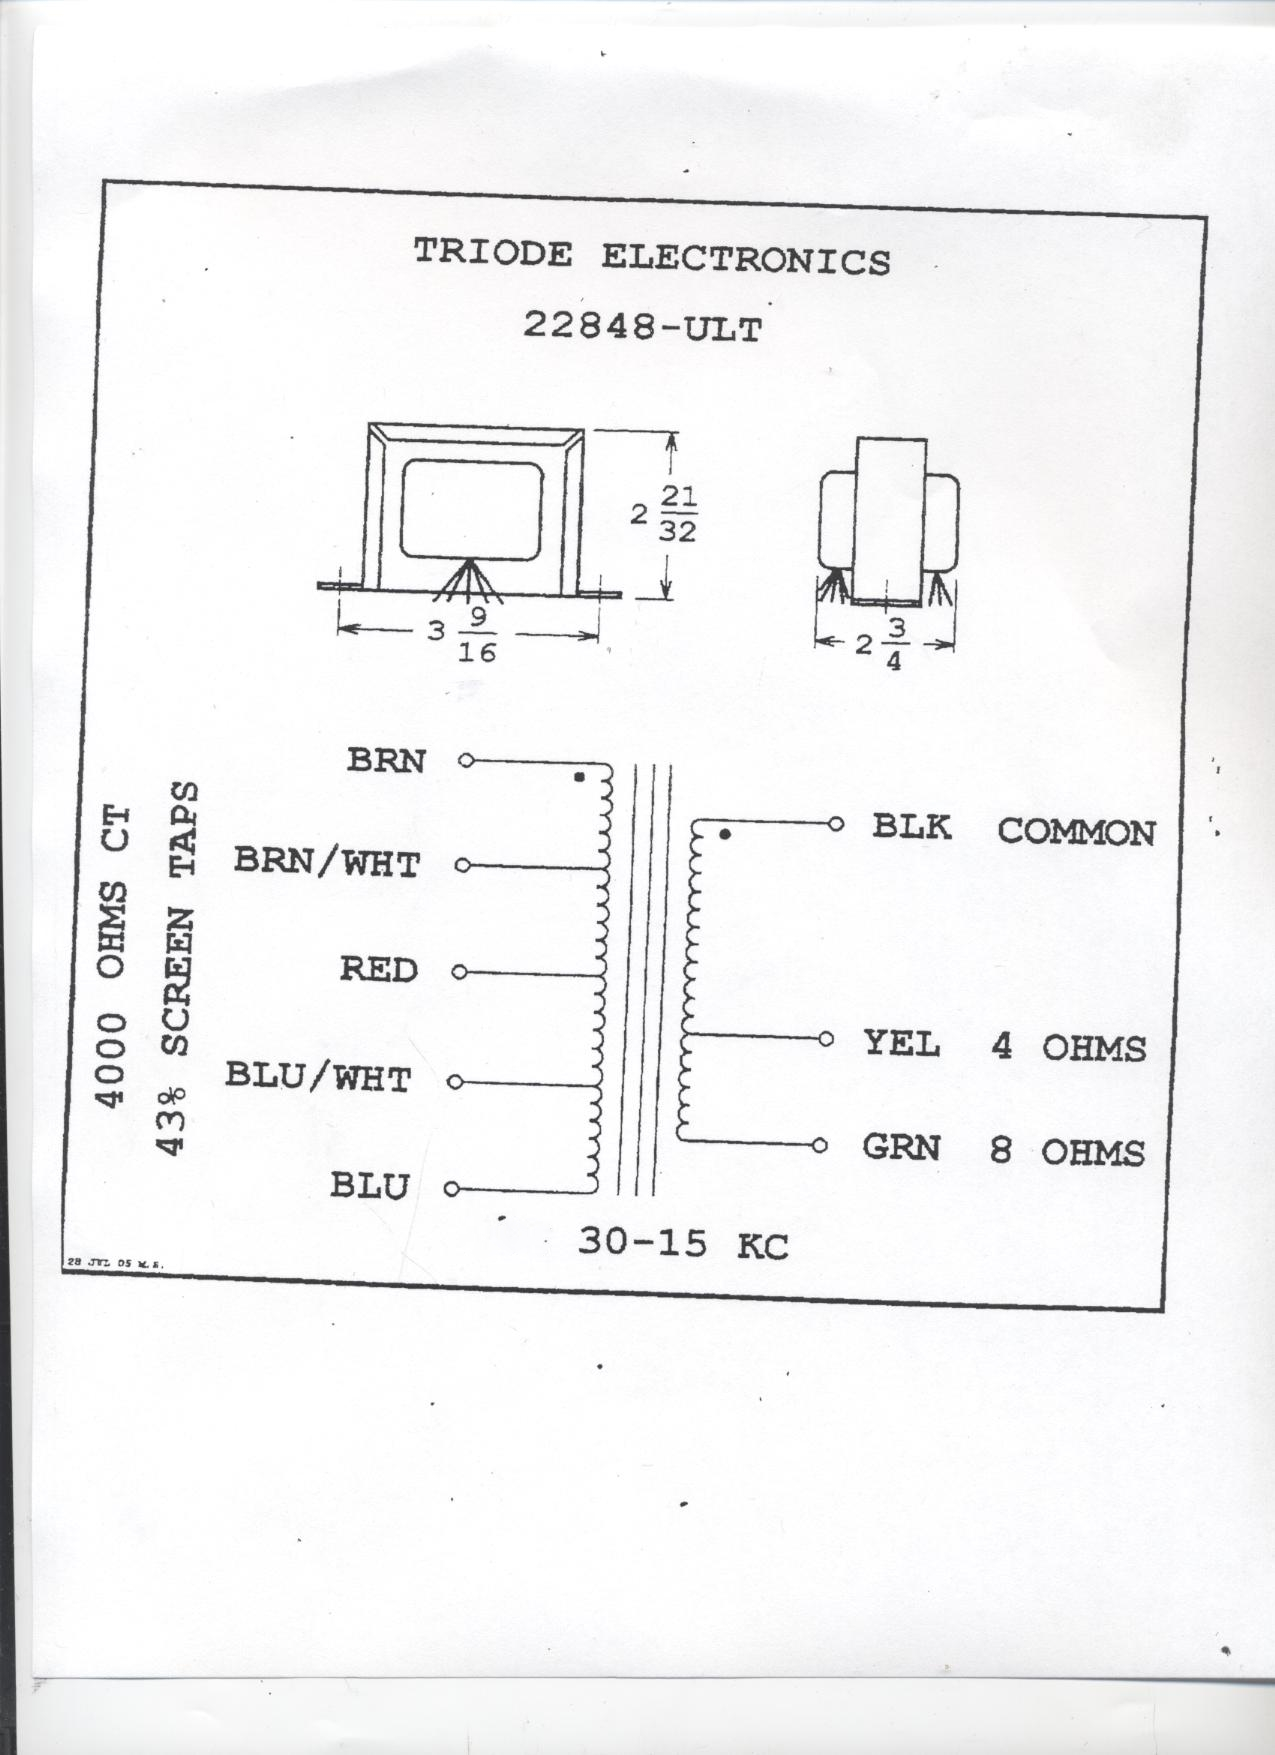 8 ohm speaker wiring diagrams thermo king tripac apu diagram 22848 ult bandmaster style ultra linear 30w output